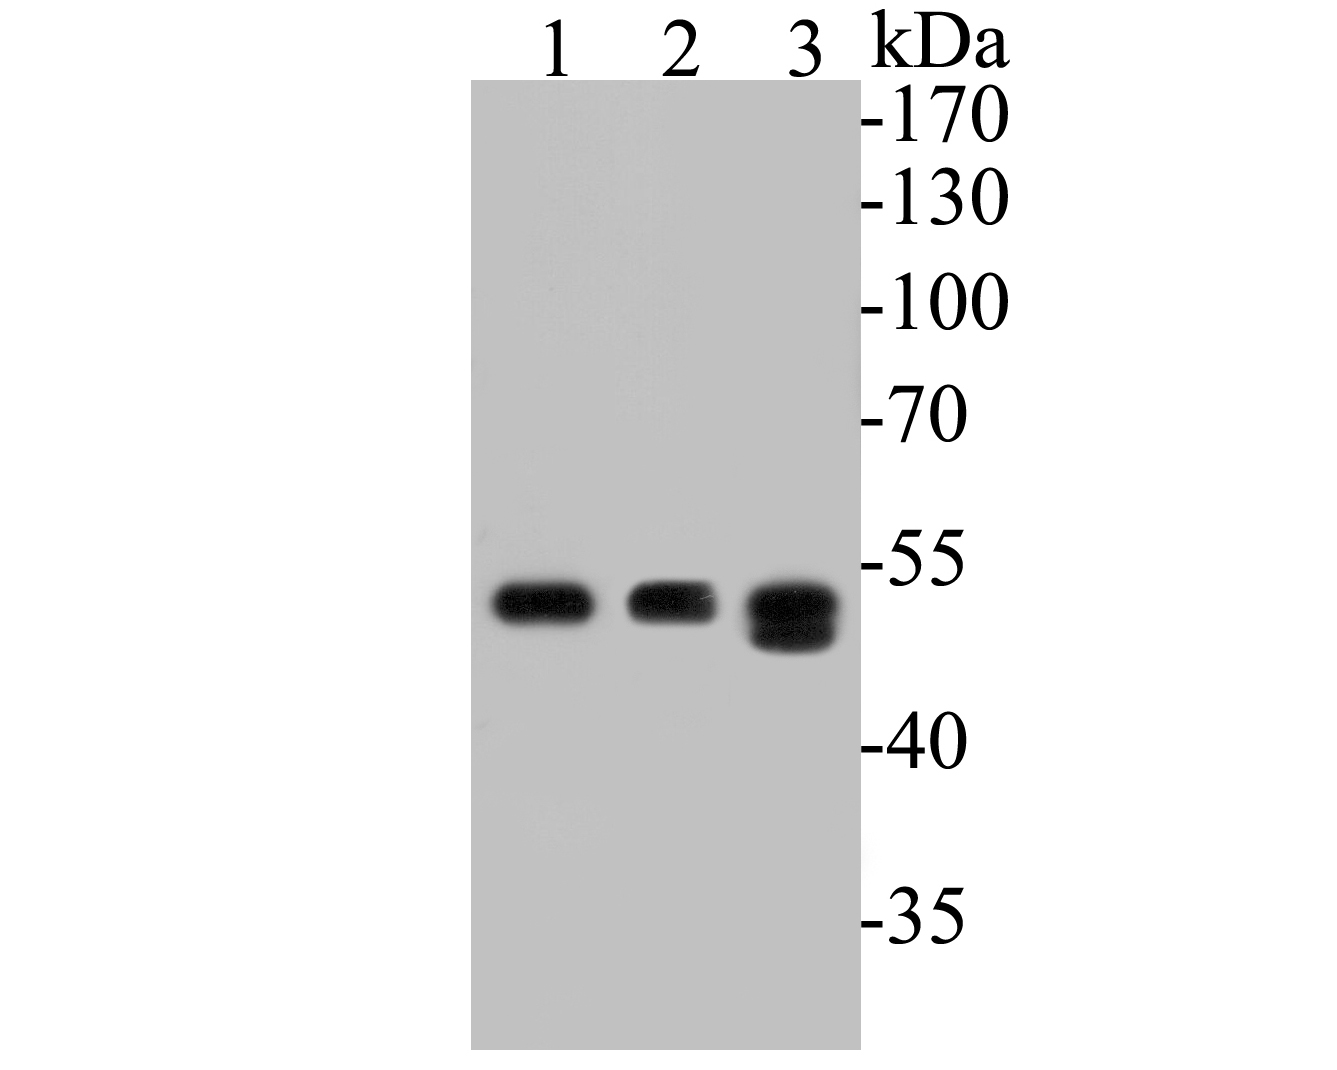 Western blot analysis of FH on different lysates. Proteins were transferred to a PVDF membrane and blocked with 5% BSA in PBS for 1 hour at room temperature. The primary antibody (ER1901-10, 1/500) was used in 5% BSA at room temperature for 2 hours. Goat Anti-Rabbit IgG - HRP Secondary Antibody (HA1001) at 1:5,000 dilution was used for 1 hour at room temperature.<br />  Positive control: <br />  Lane 1: SH-SY5Y cell lysate<br />  Lane 2: Mouse colon tissue lysate<br />  Lane 3: Rat colon tissue lysate